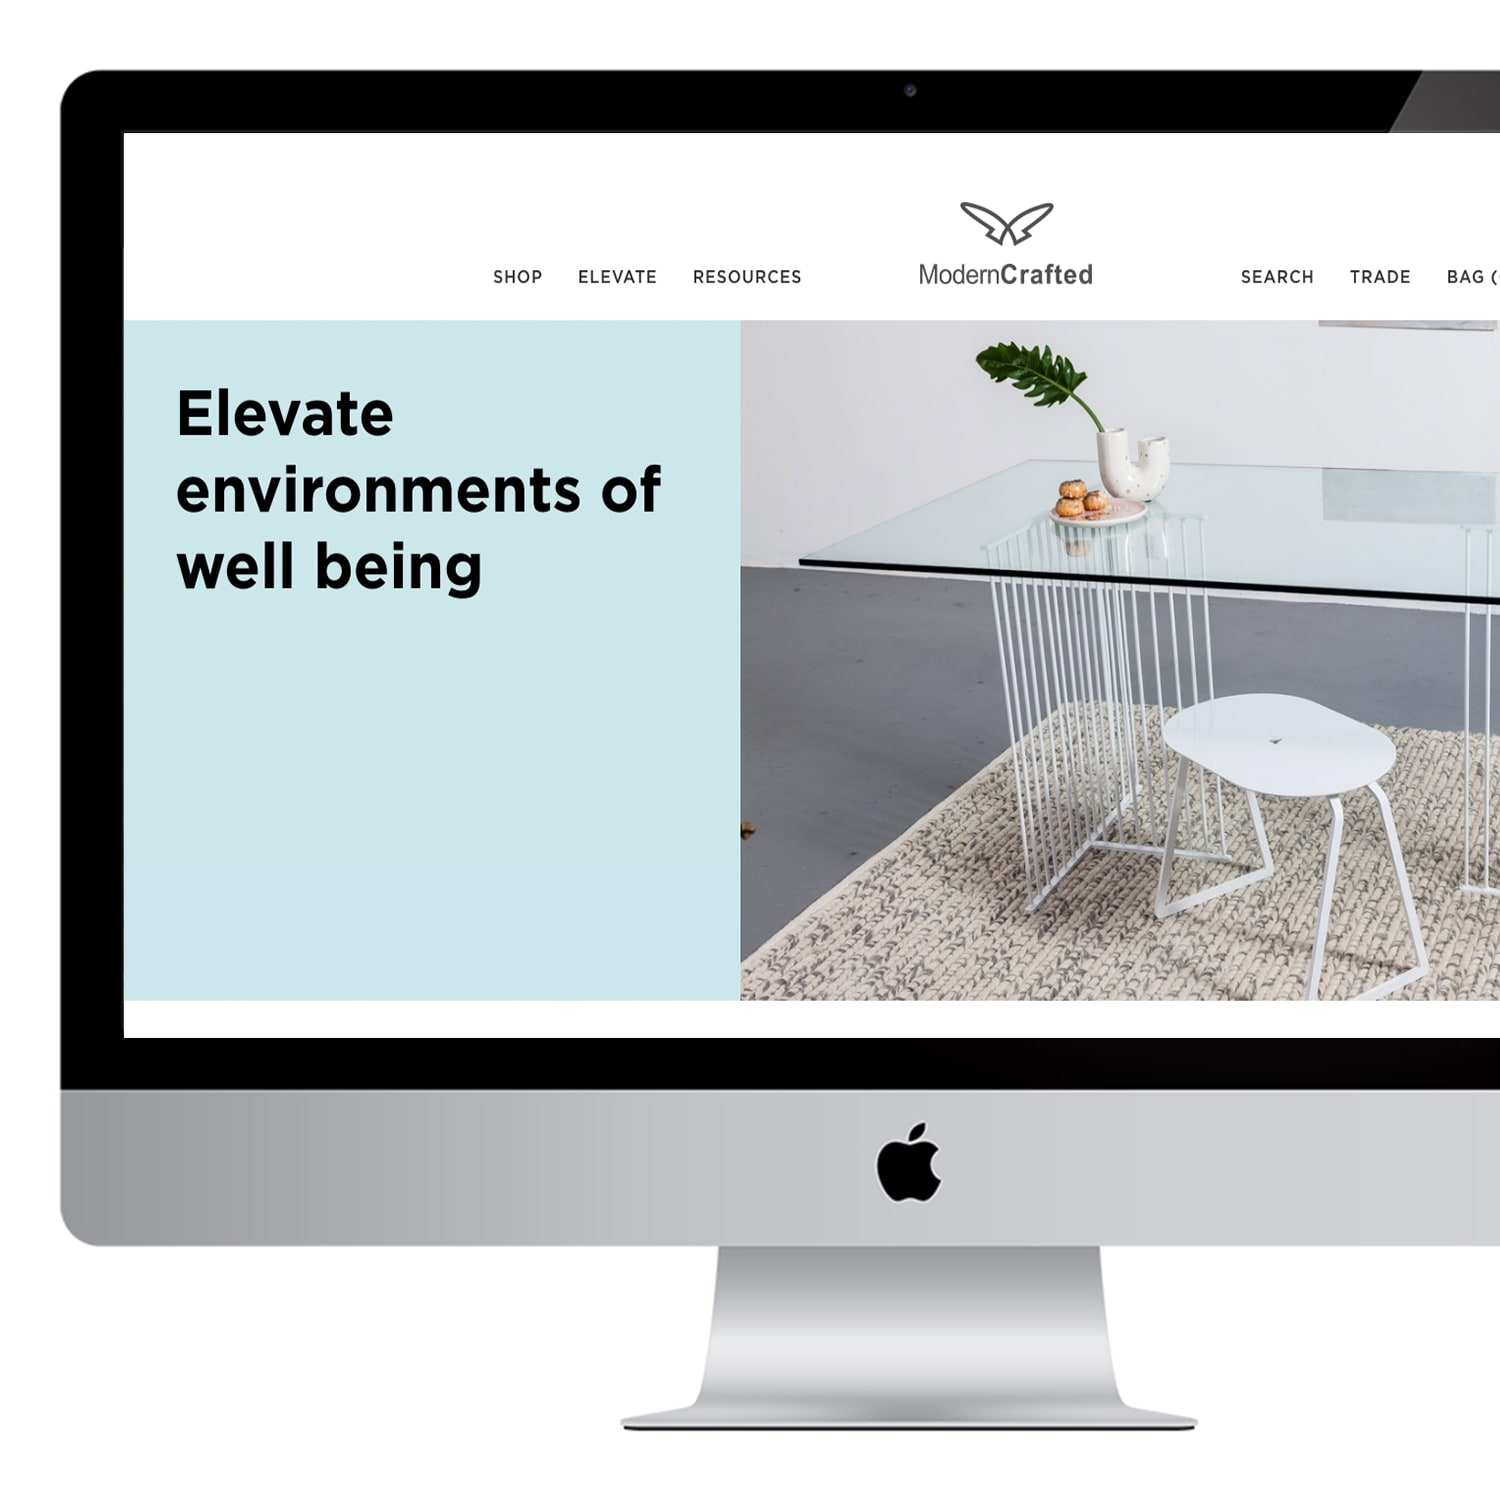 Ecommerce Design for Modern Crafted